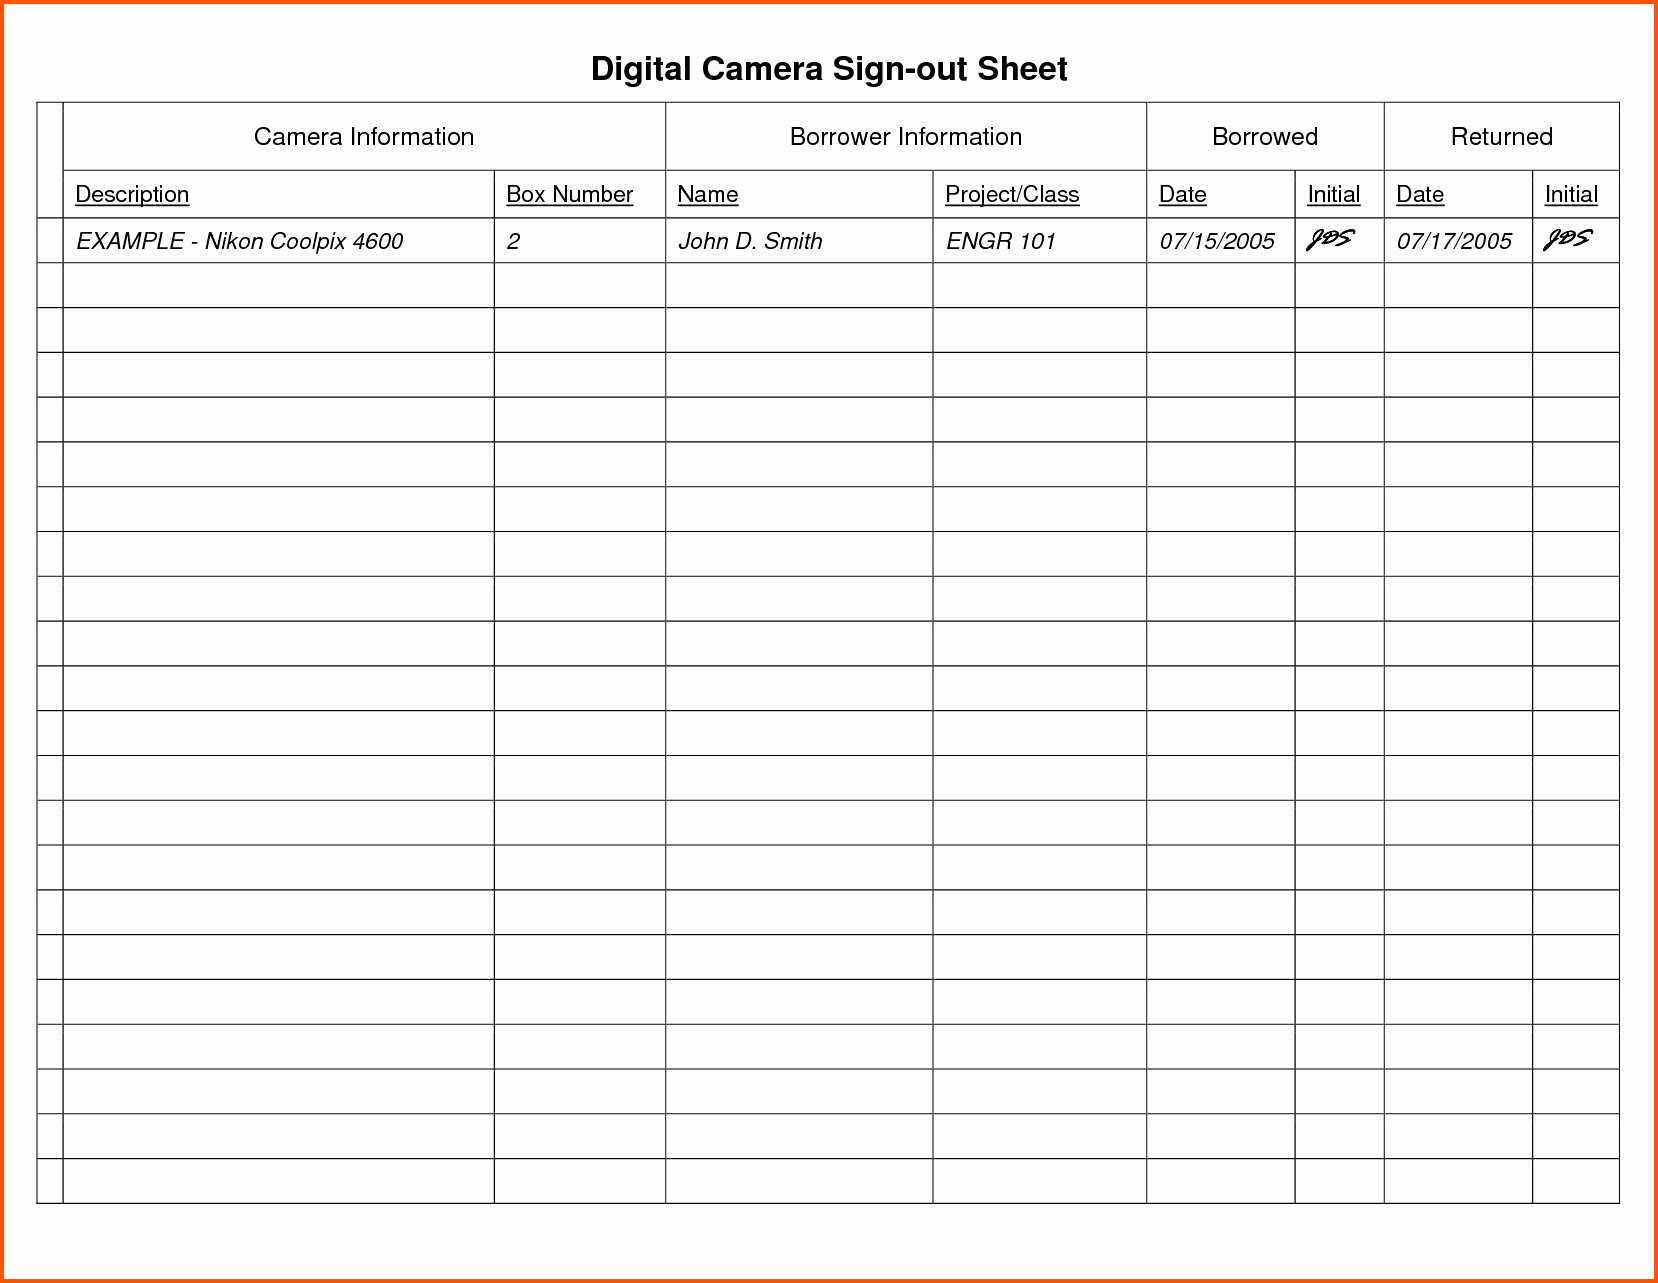 Sign Out Sheet Template Excel Elegant 13 Elegant Inventory Sign Out Sheet Excel Maotme Life